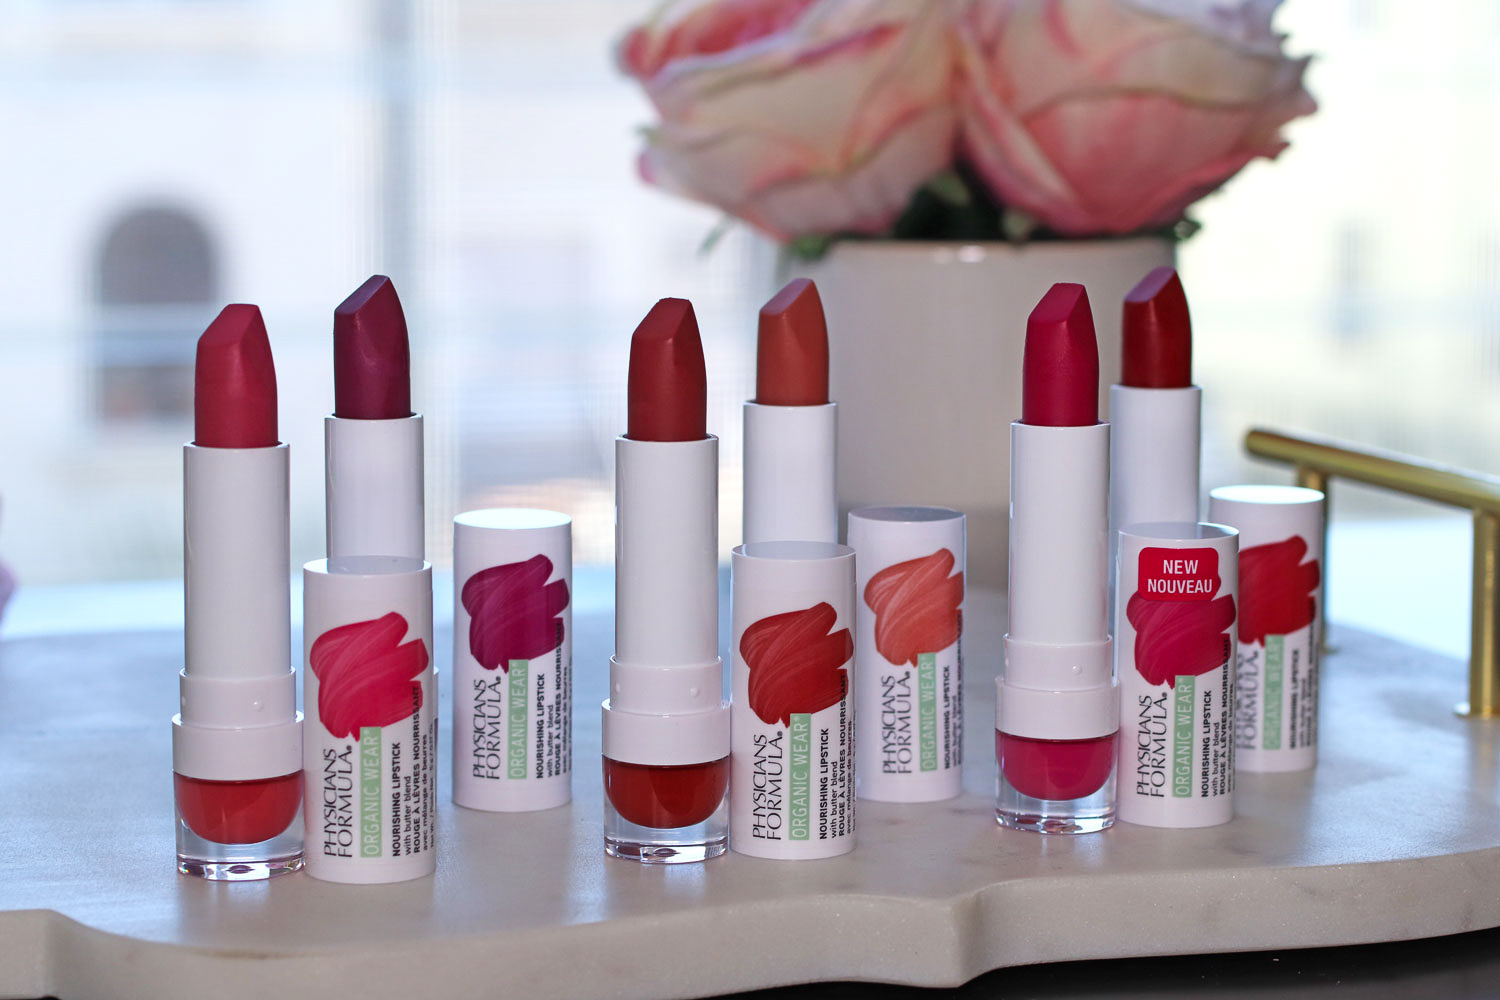 Physicians Formula Organic Wear Nourishing Lipstick Review and Swatches